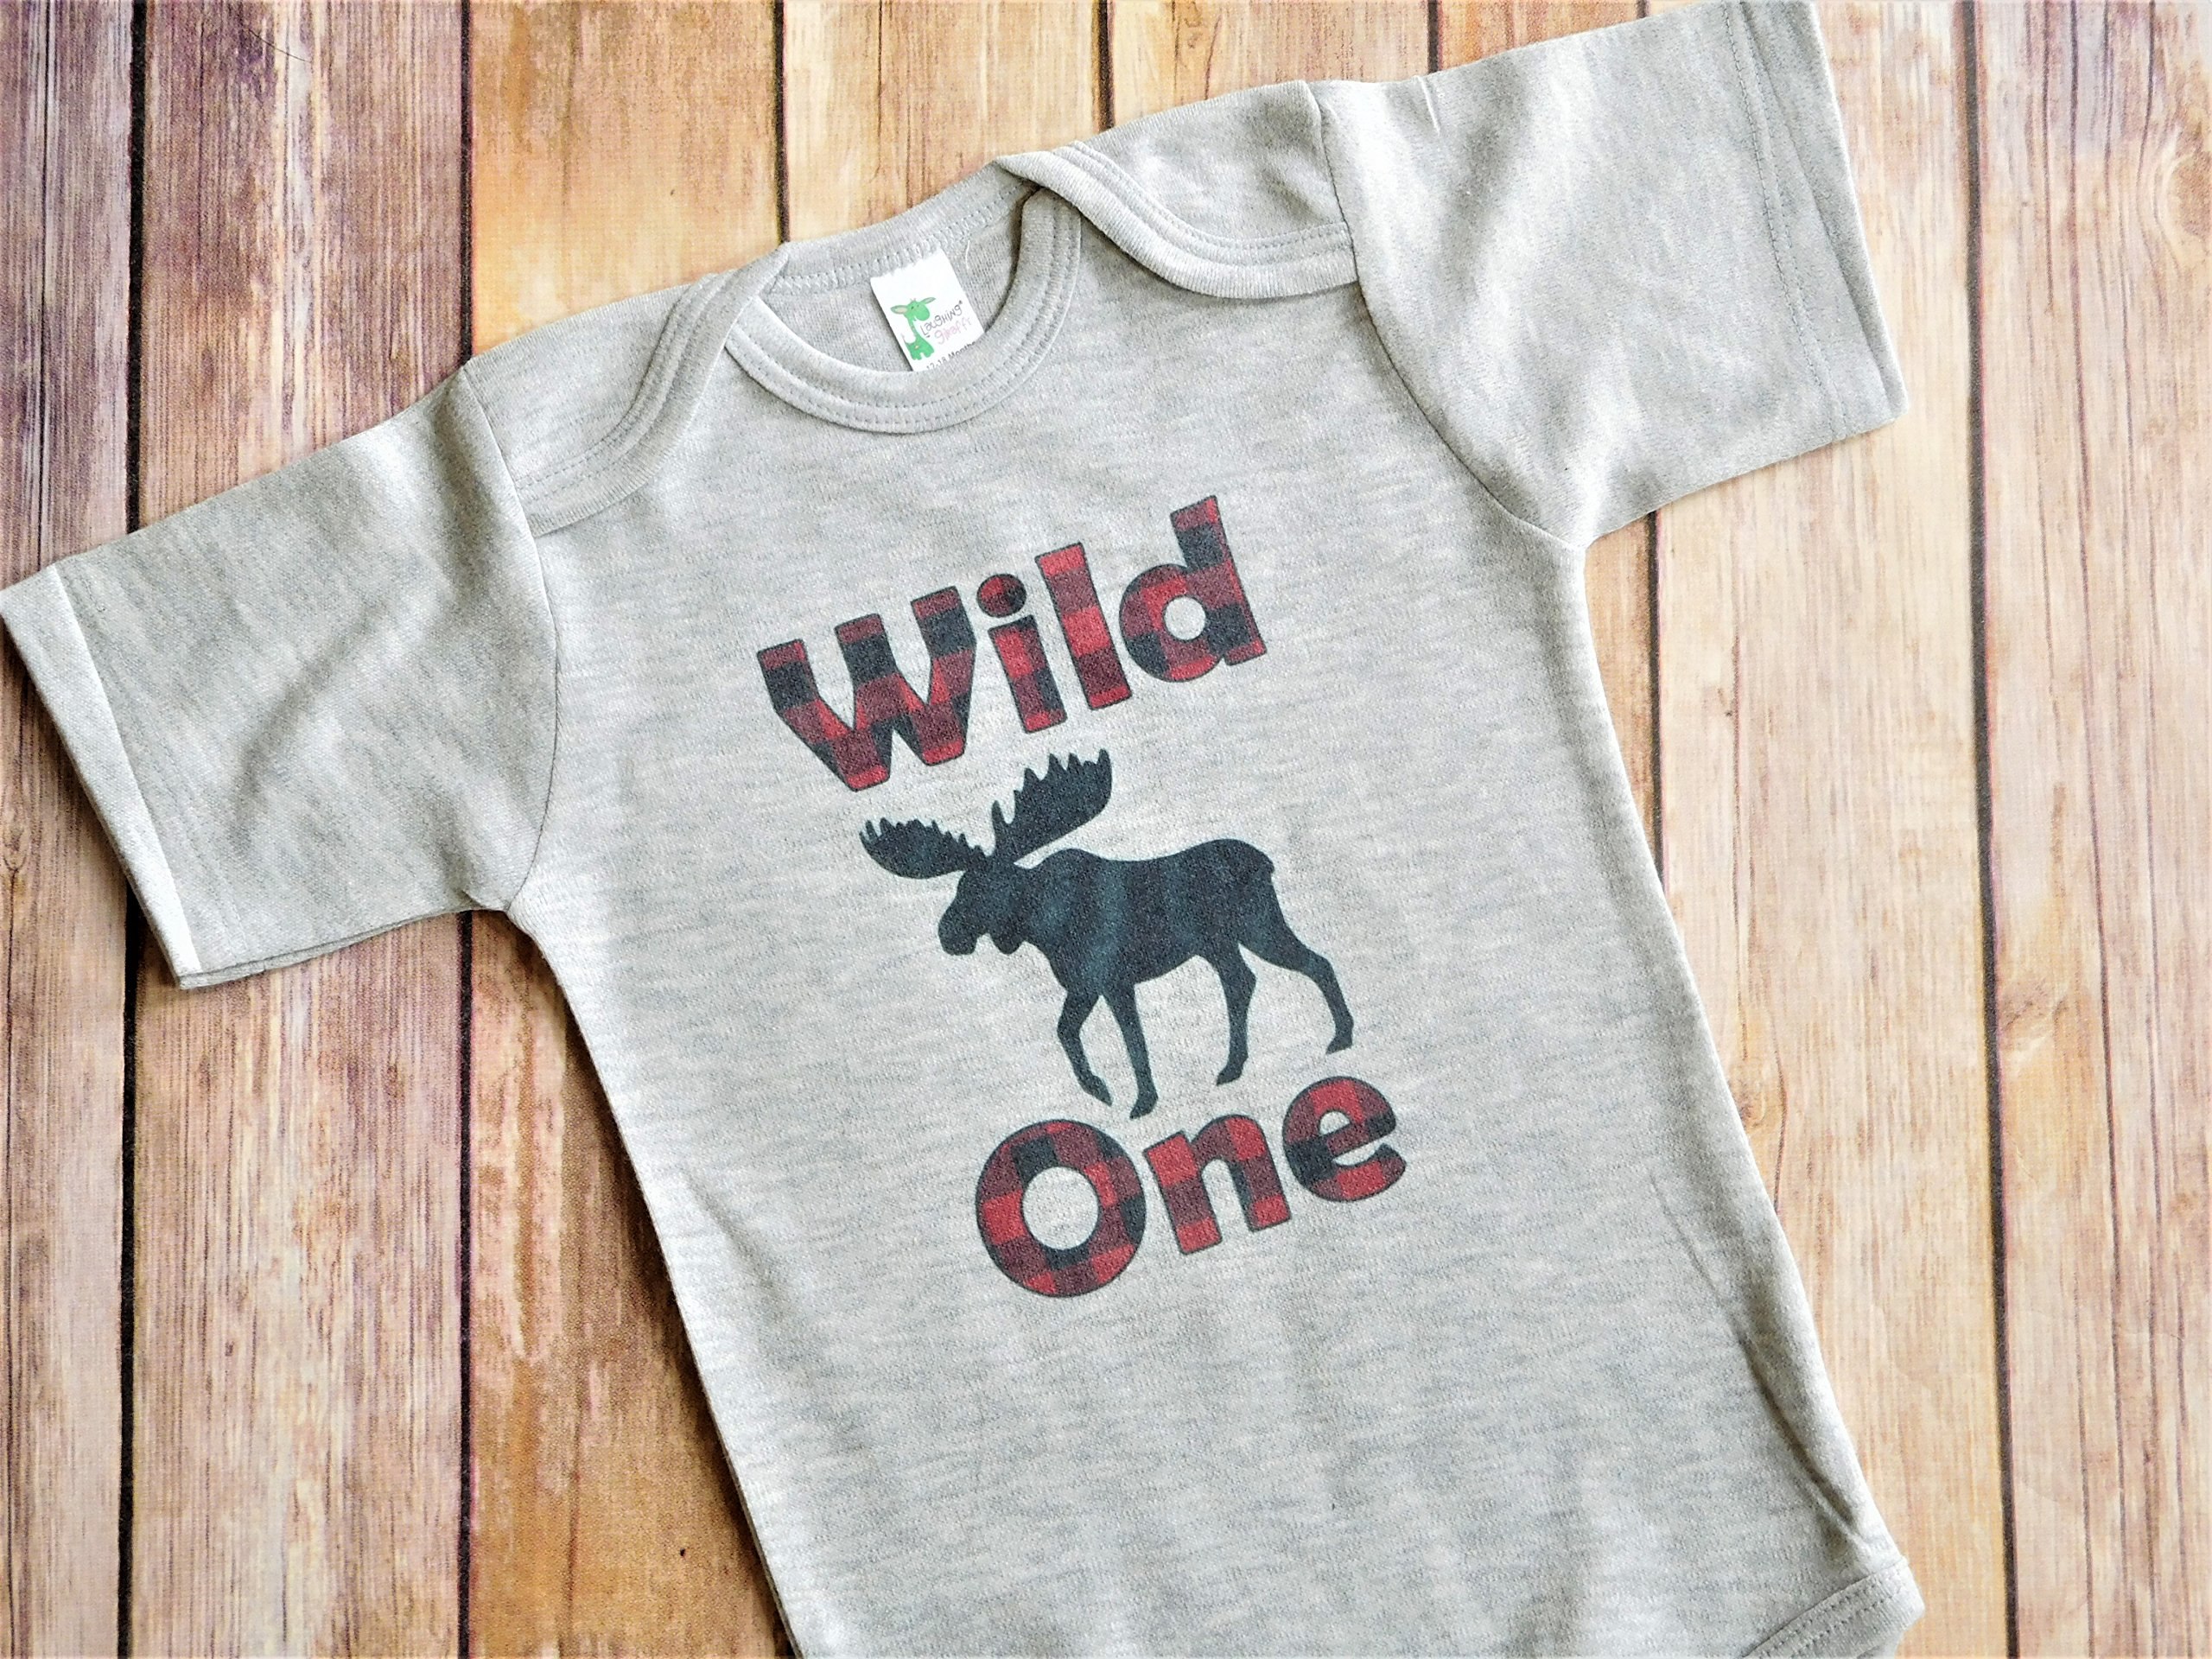 Wild One 1st Birthday Party Bodysuit - Lumberjack Theme Party Outfit - Red and Black Plaid Moose on Gray Bodysuit